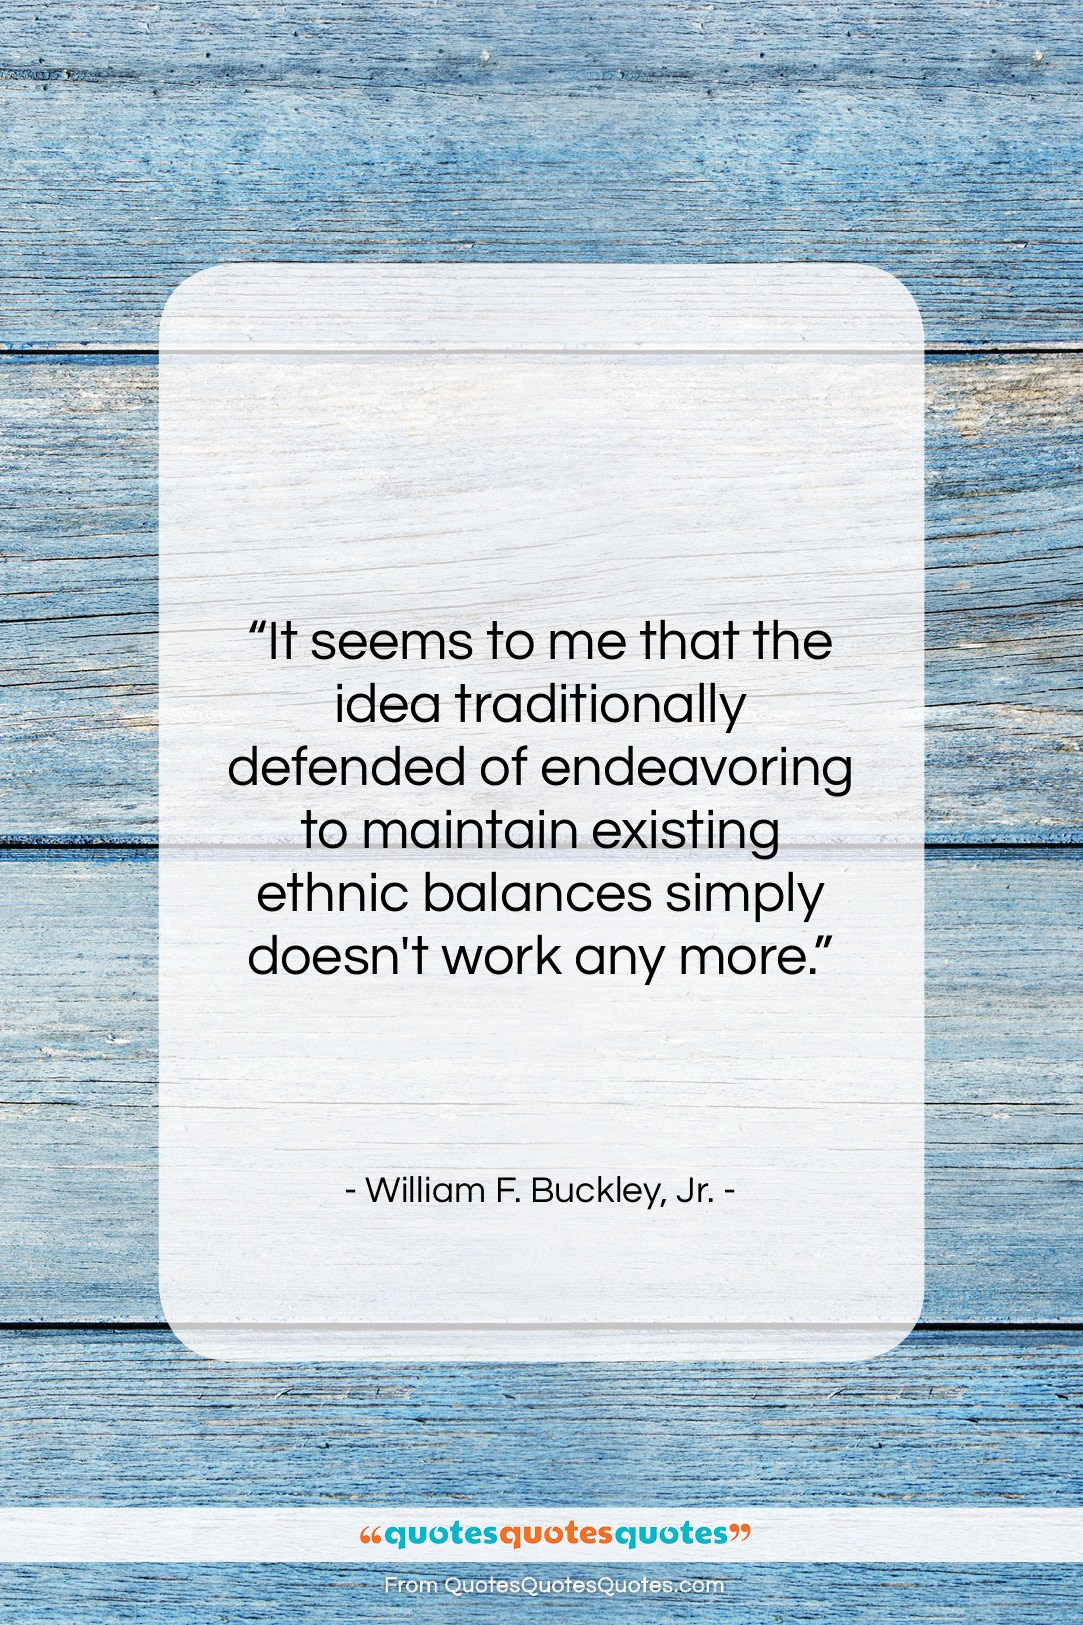 """William F. Buckley, Jr. quote: """"It seems to me that the idea…""""- at QuotesQuotesQuotes.com"""